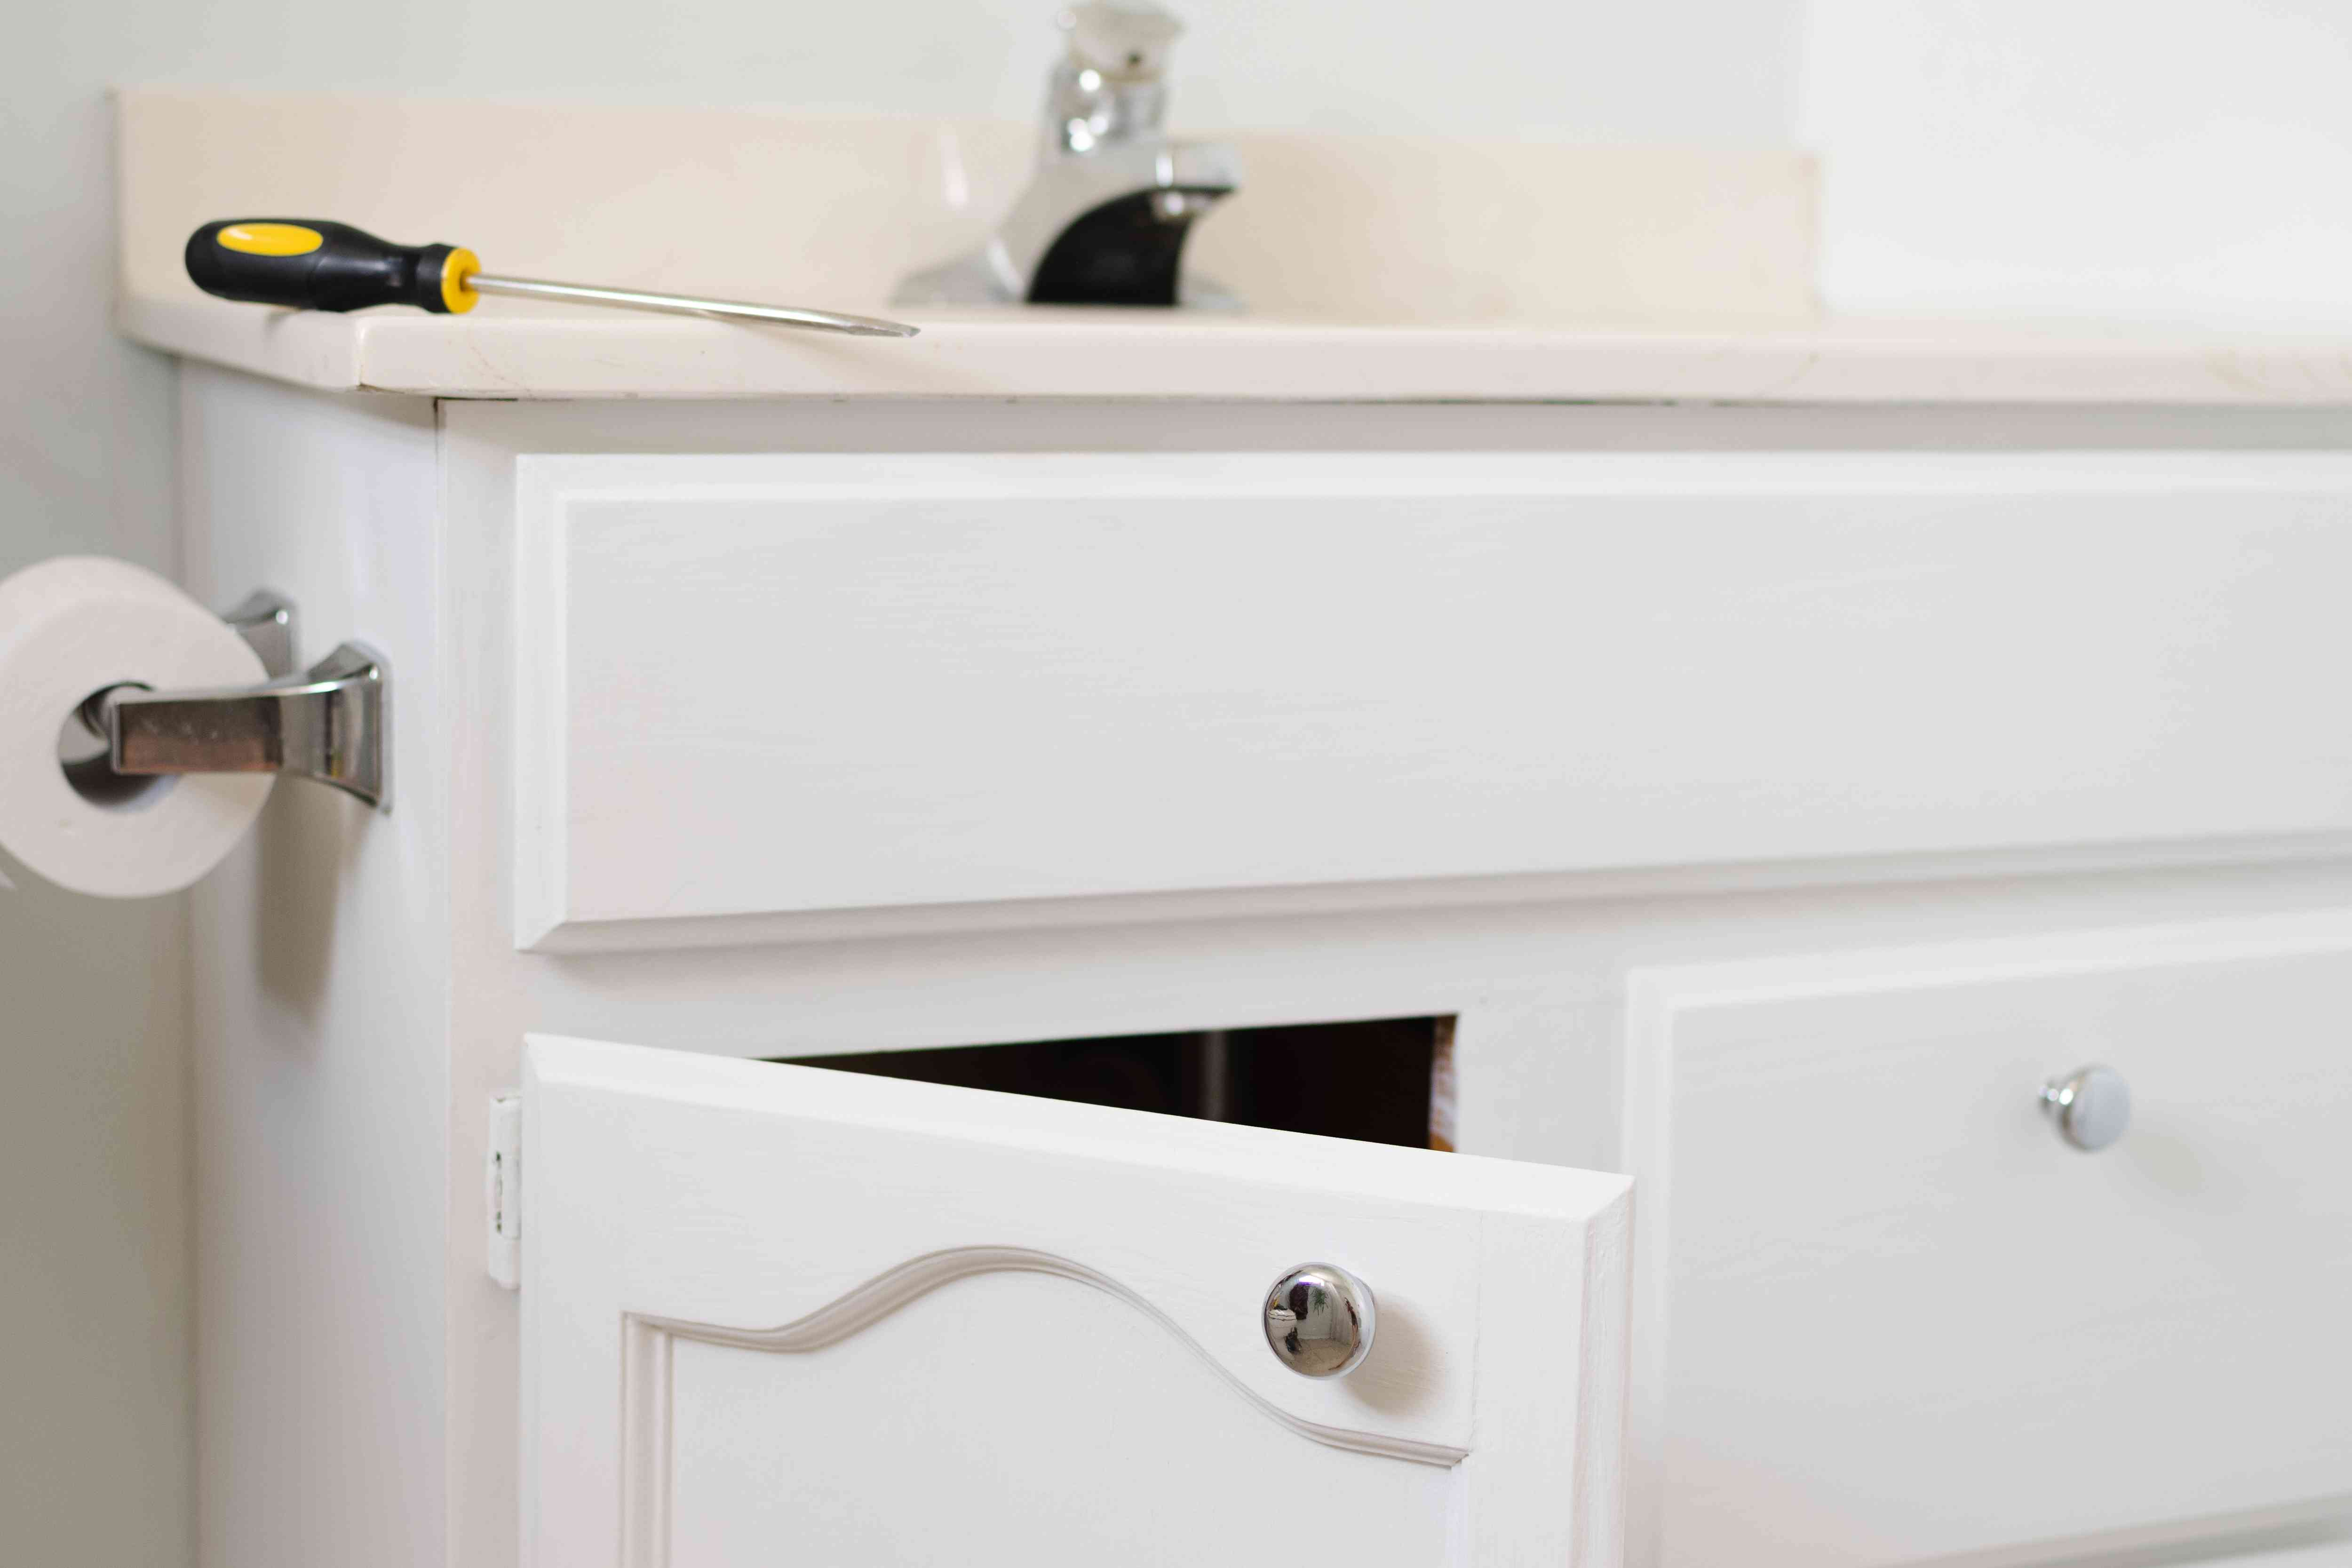 White bathroom cabinets reattached back in place in bathroom with screwdriver